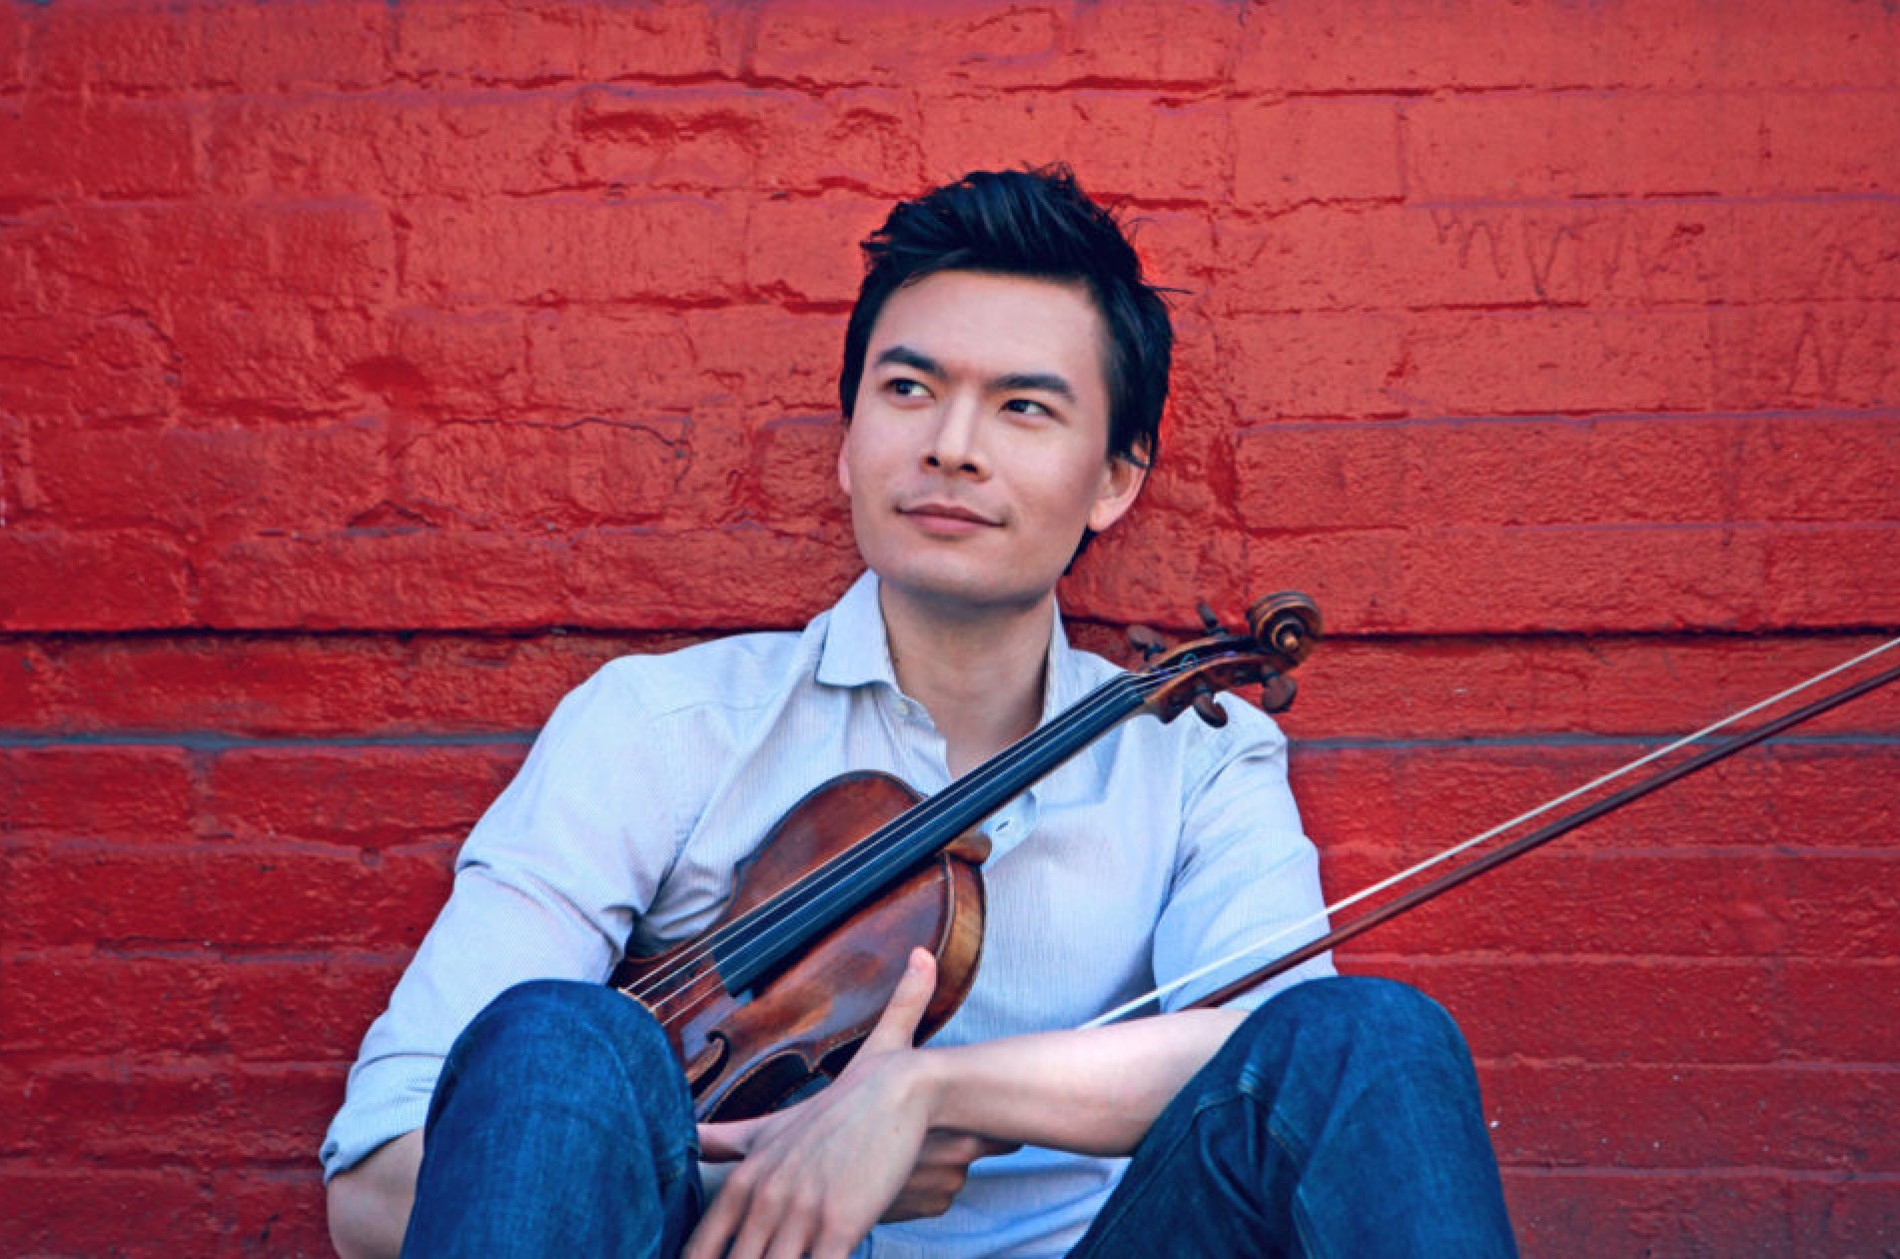 Stefan Jackiw holding a violin while sitting in front of a painted red brick wall